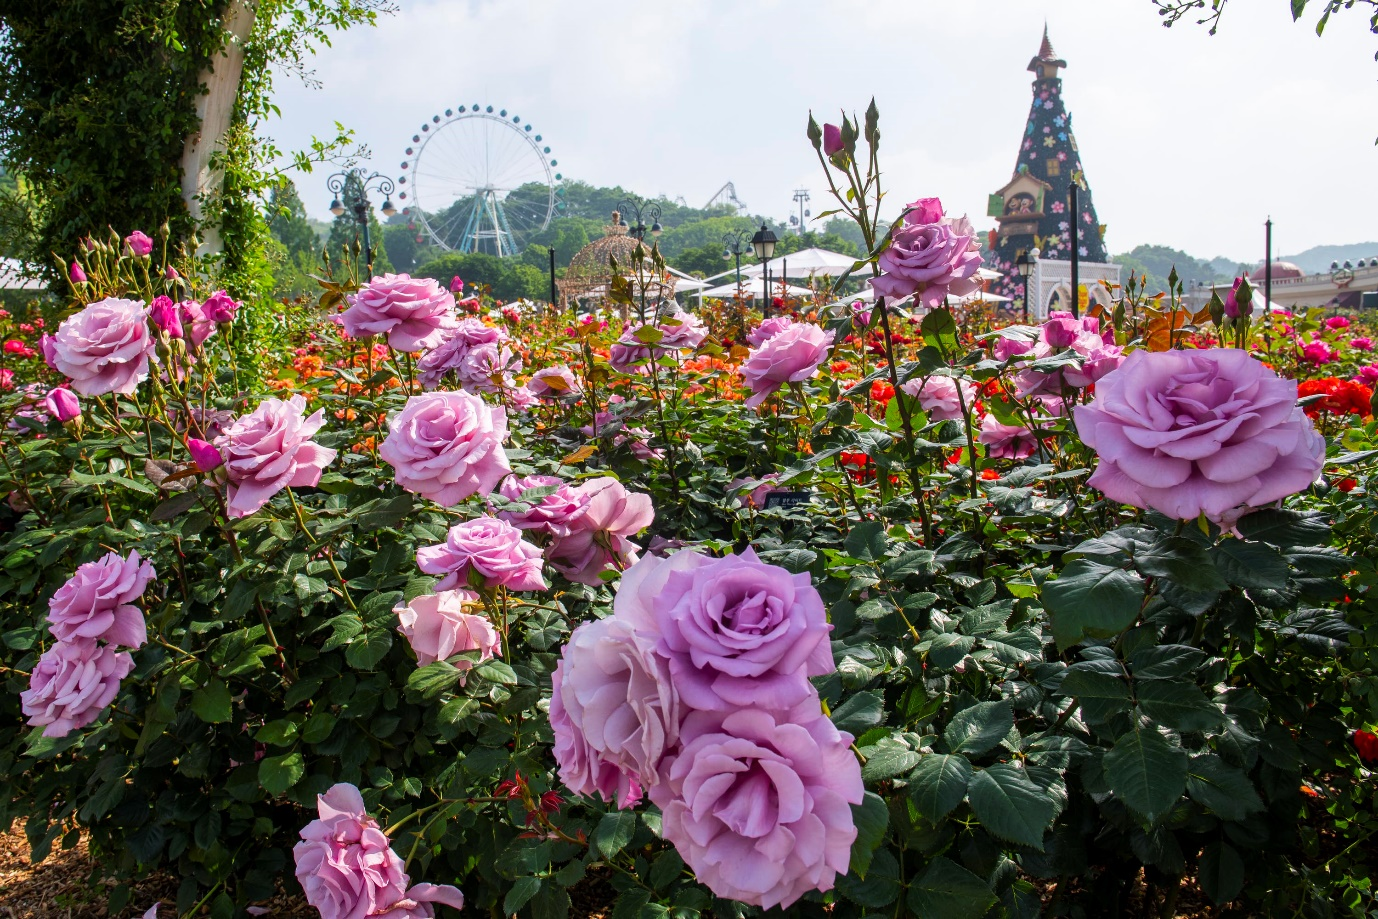 Roses bloom among the attractions of Everland, operated by Samsung C&T Resort Group and located in Yongin, Gyeonggi Province, an hour southeast of Seoul, at its 35th annual Rose Festival that runs from May 17 to June 16 this year.